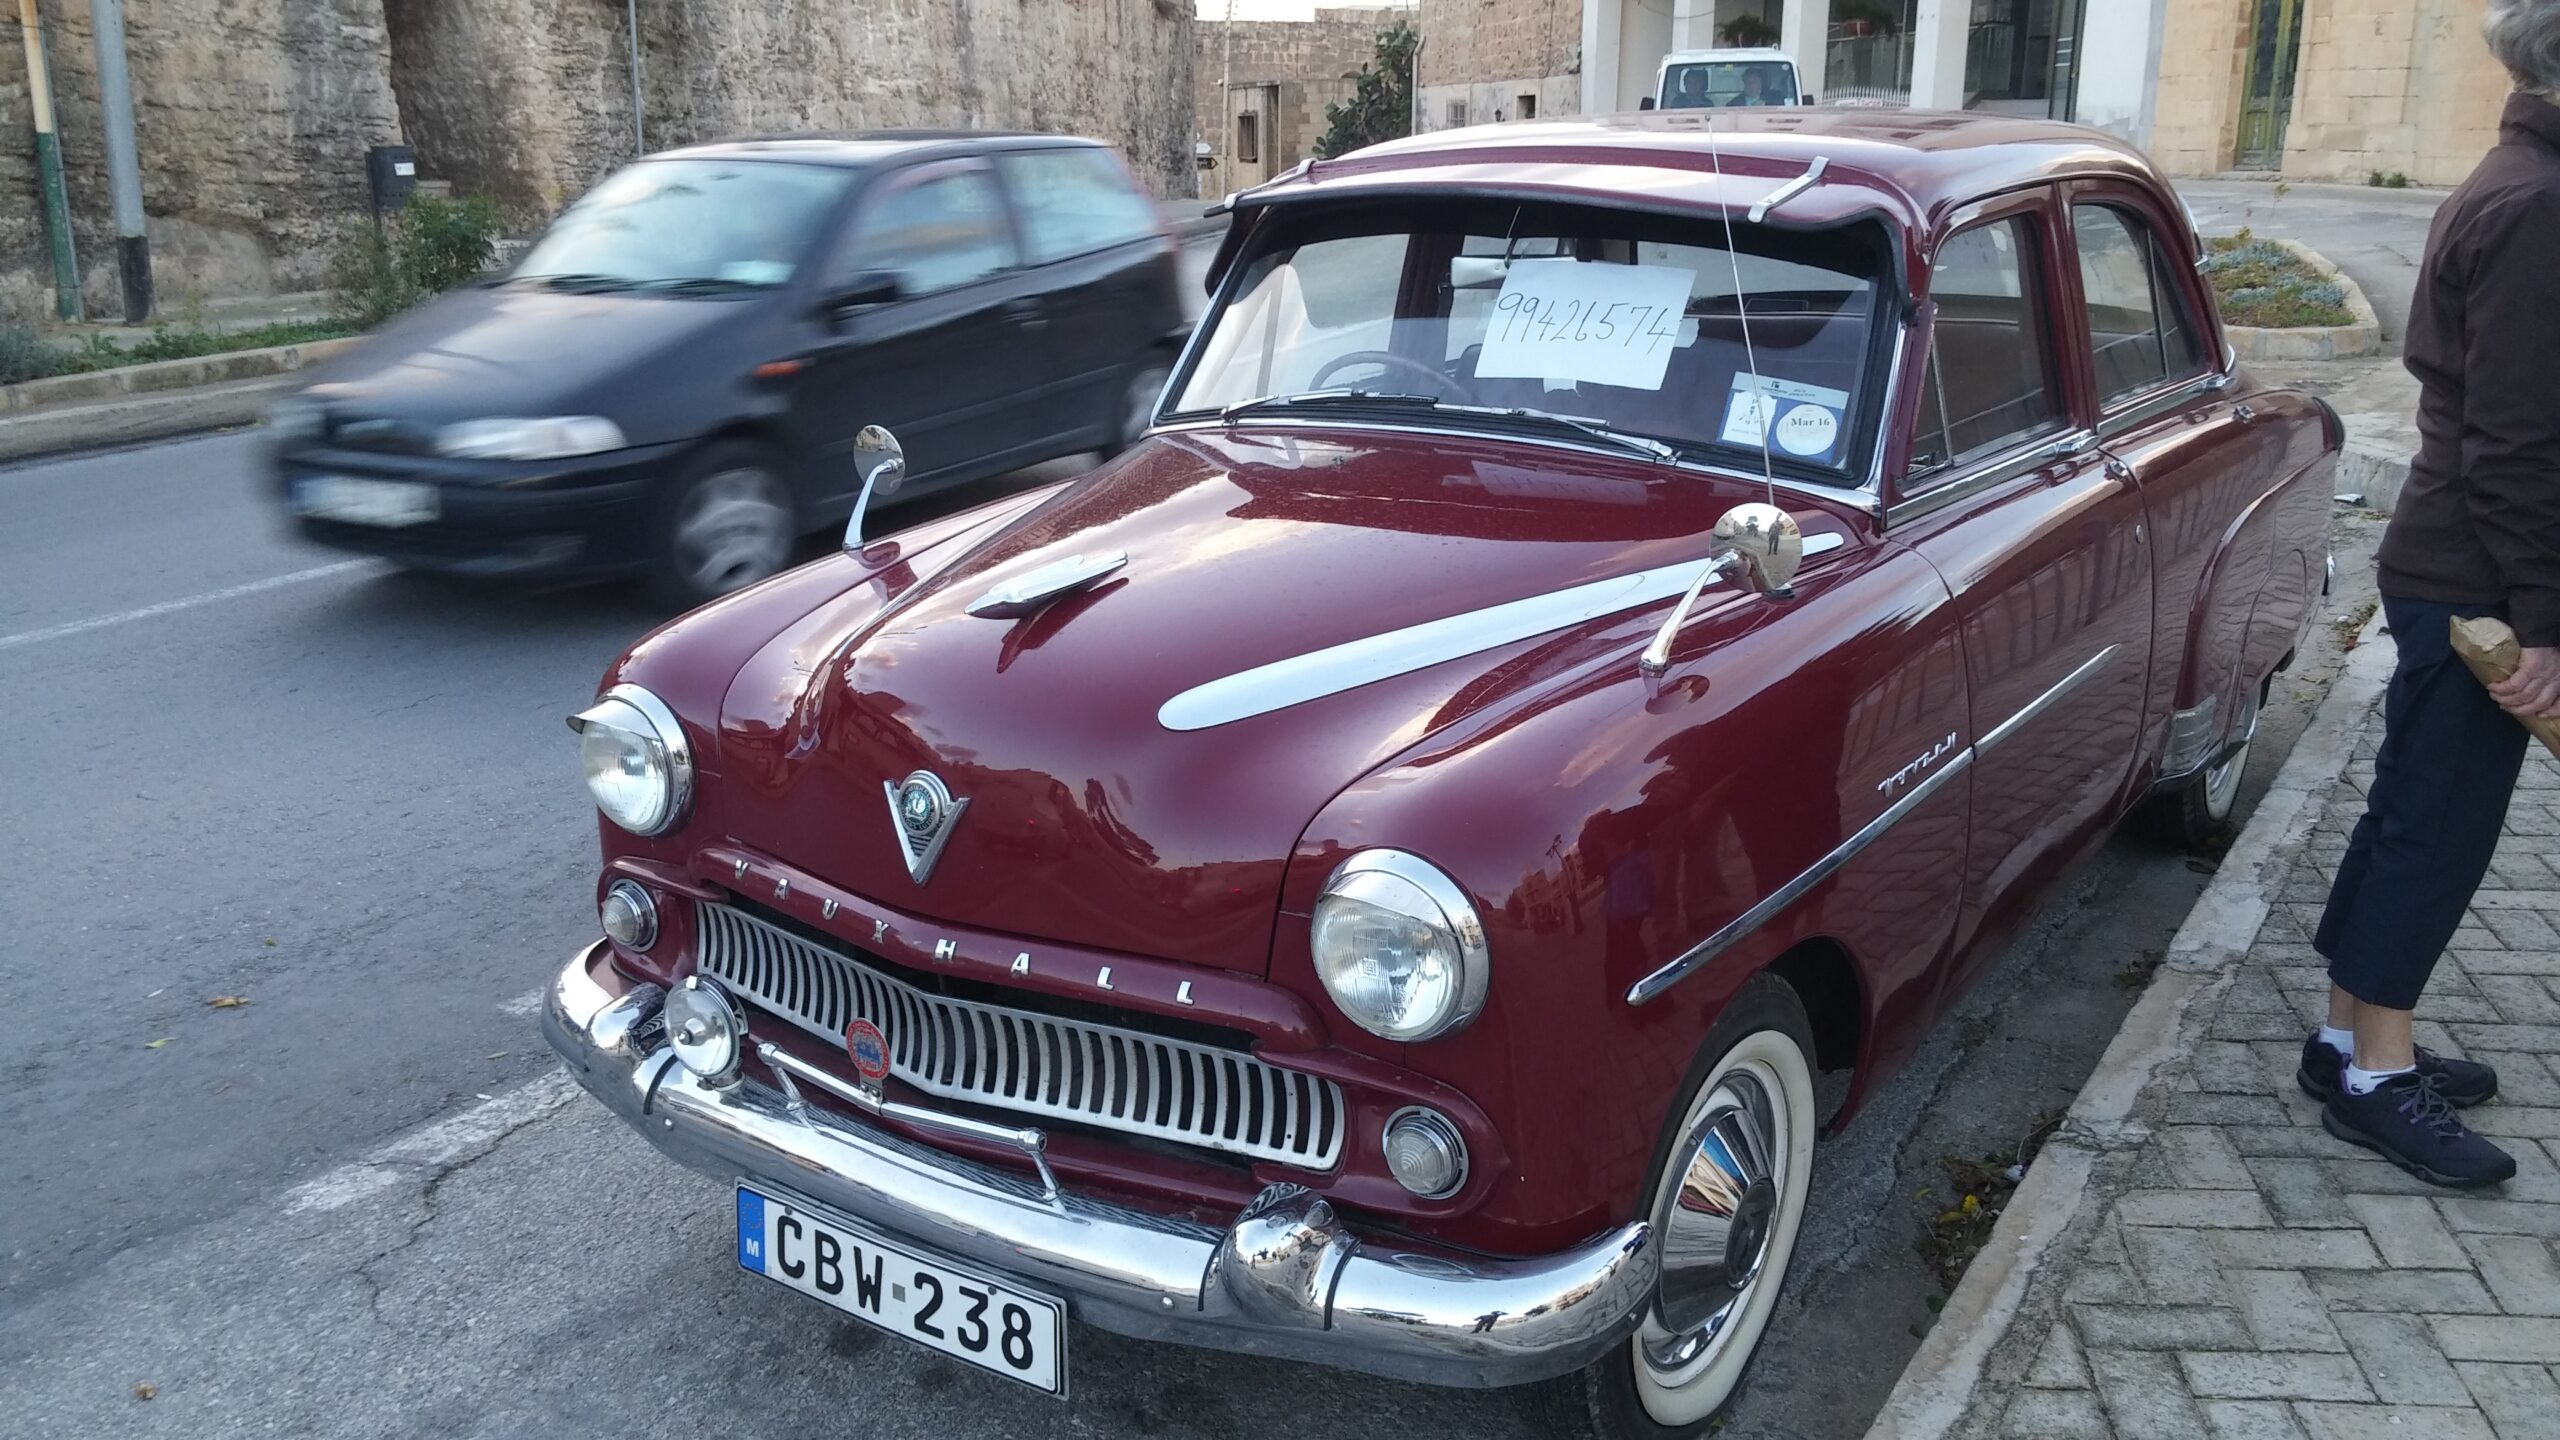 old cars are everywhere in Malta